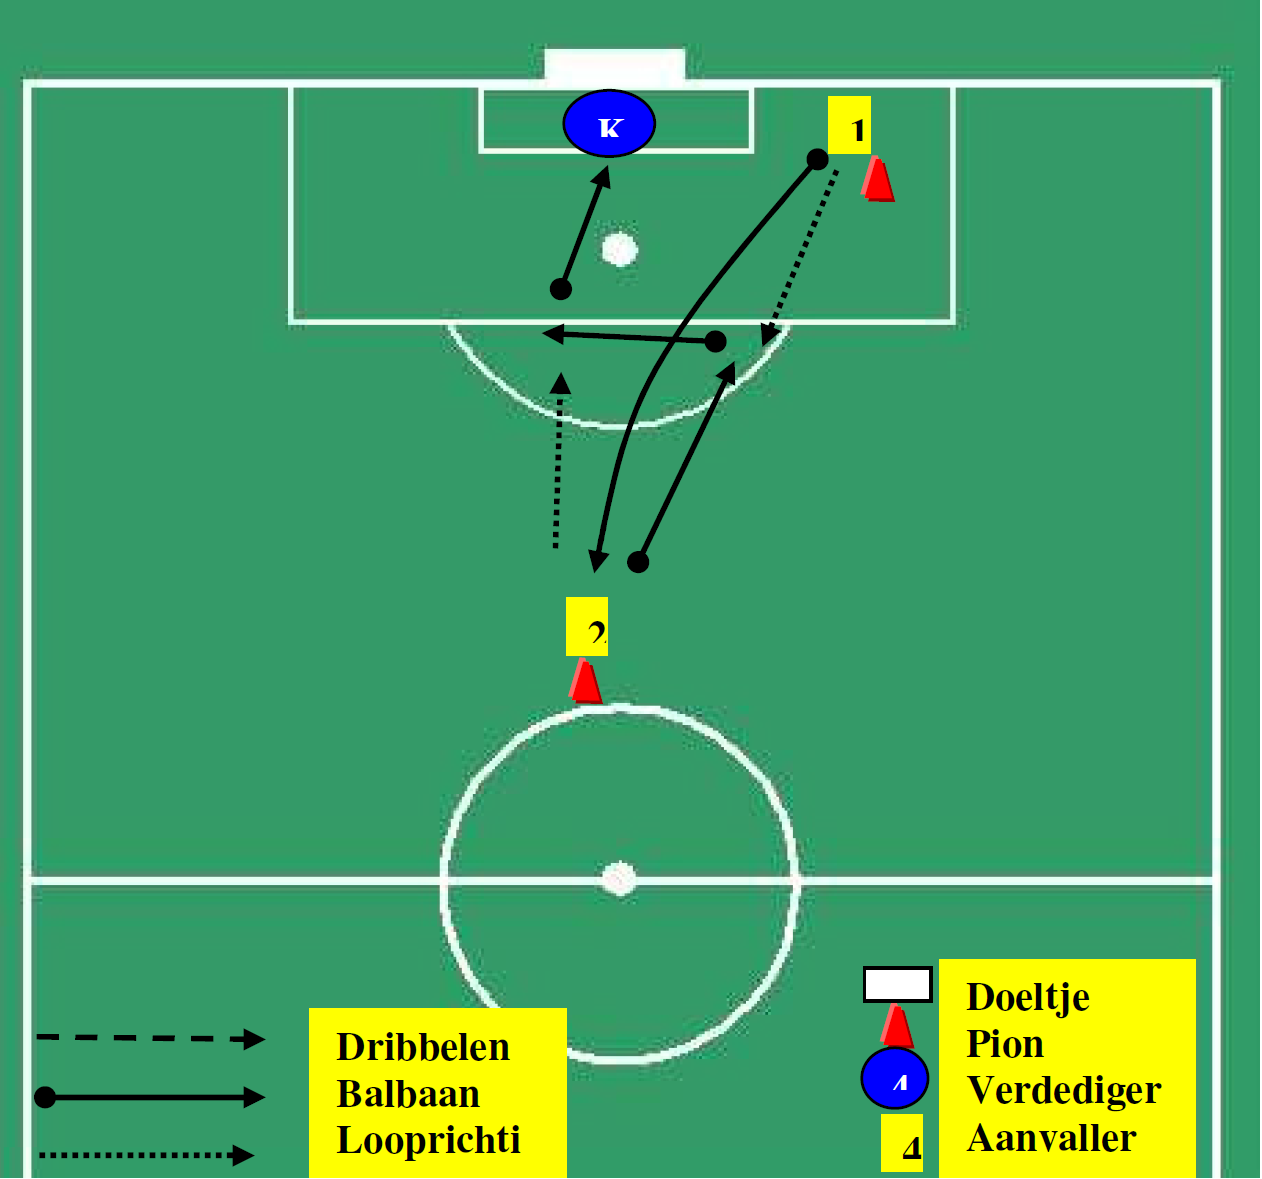 long-pass-kick-followed-by-a-1-2-combination-with-finishing-on-target